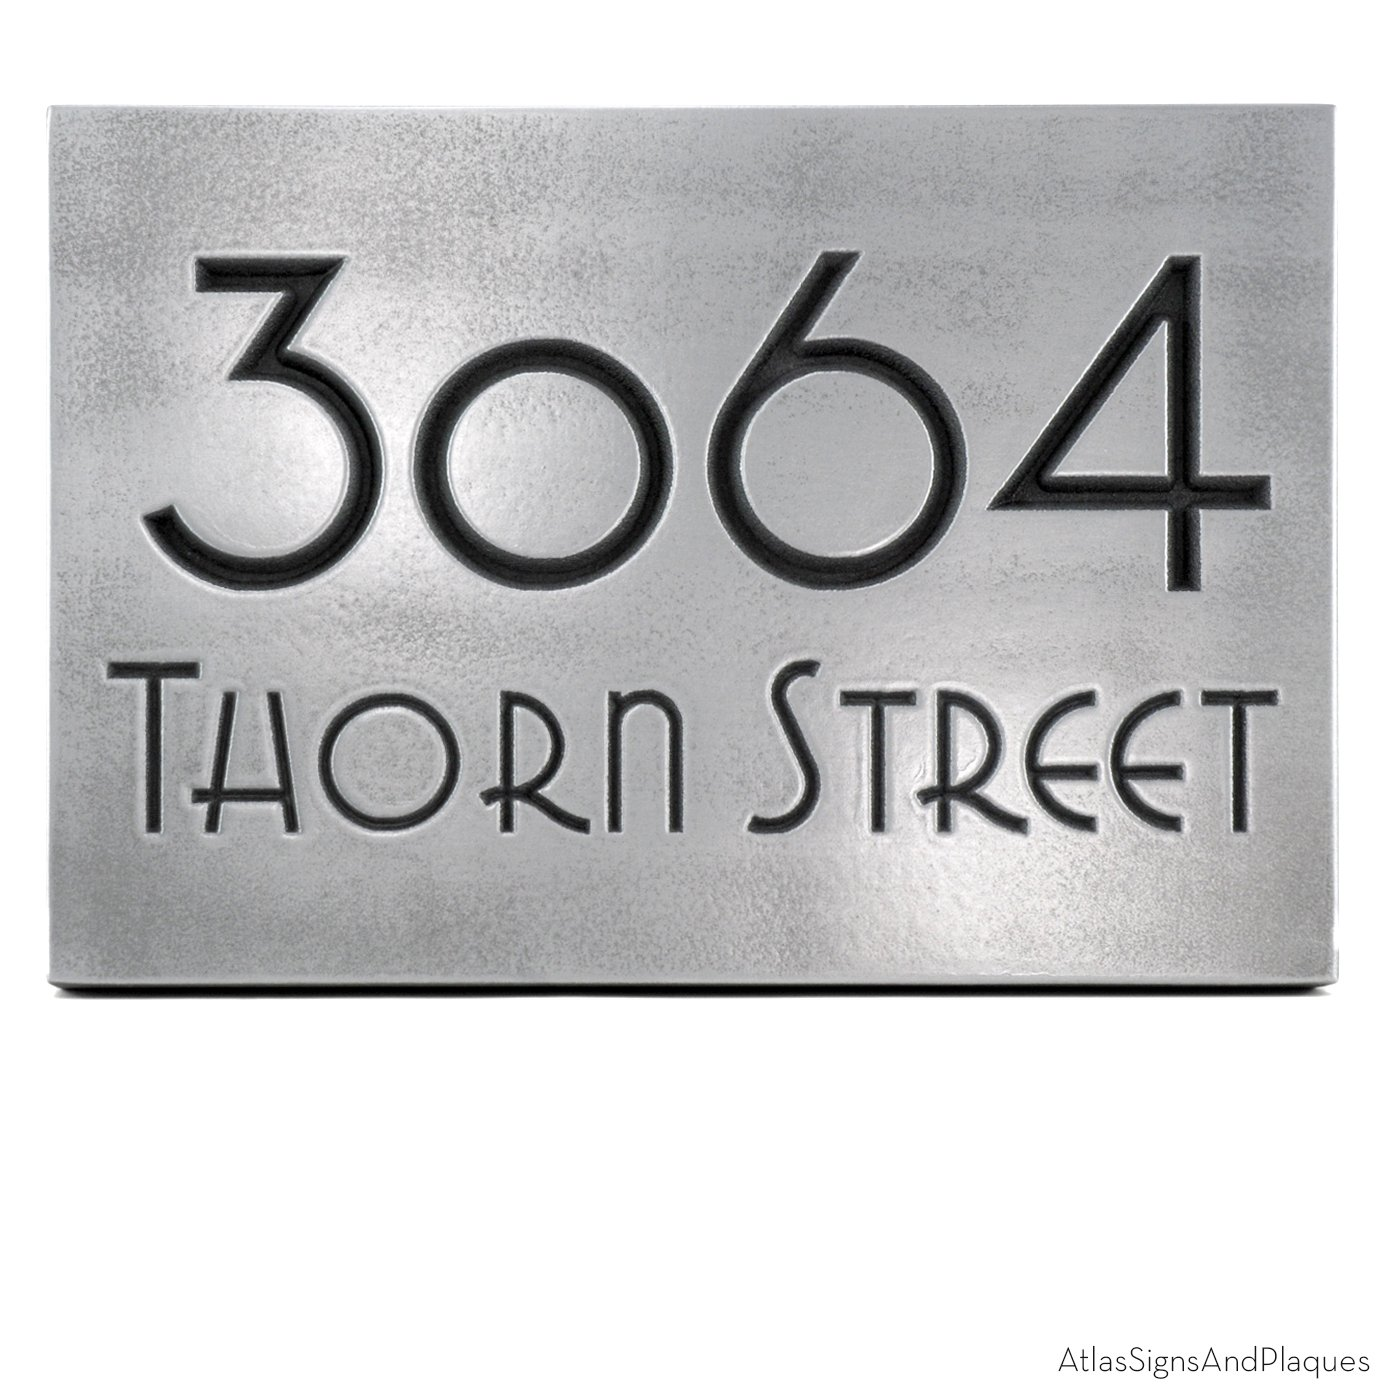 Grado Gradoo Address Plaque 12.5x8.75 - Recessed Pewter Coated by Atlas Signs and Plaques